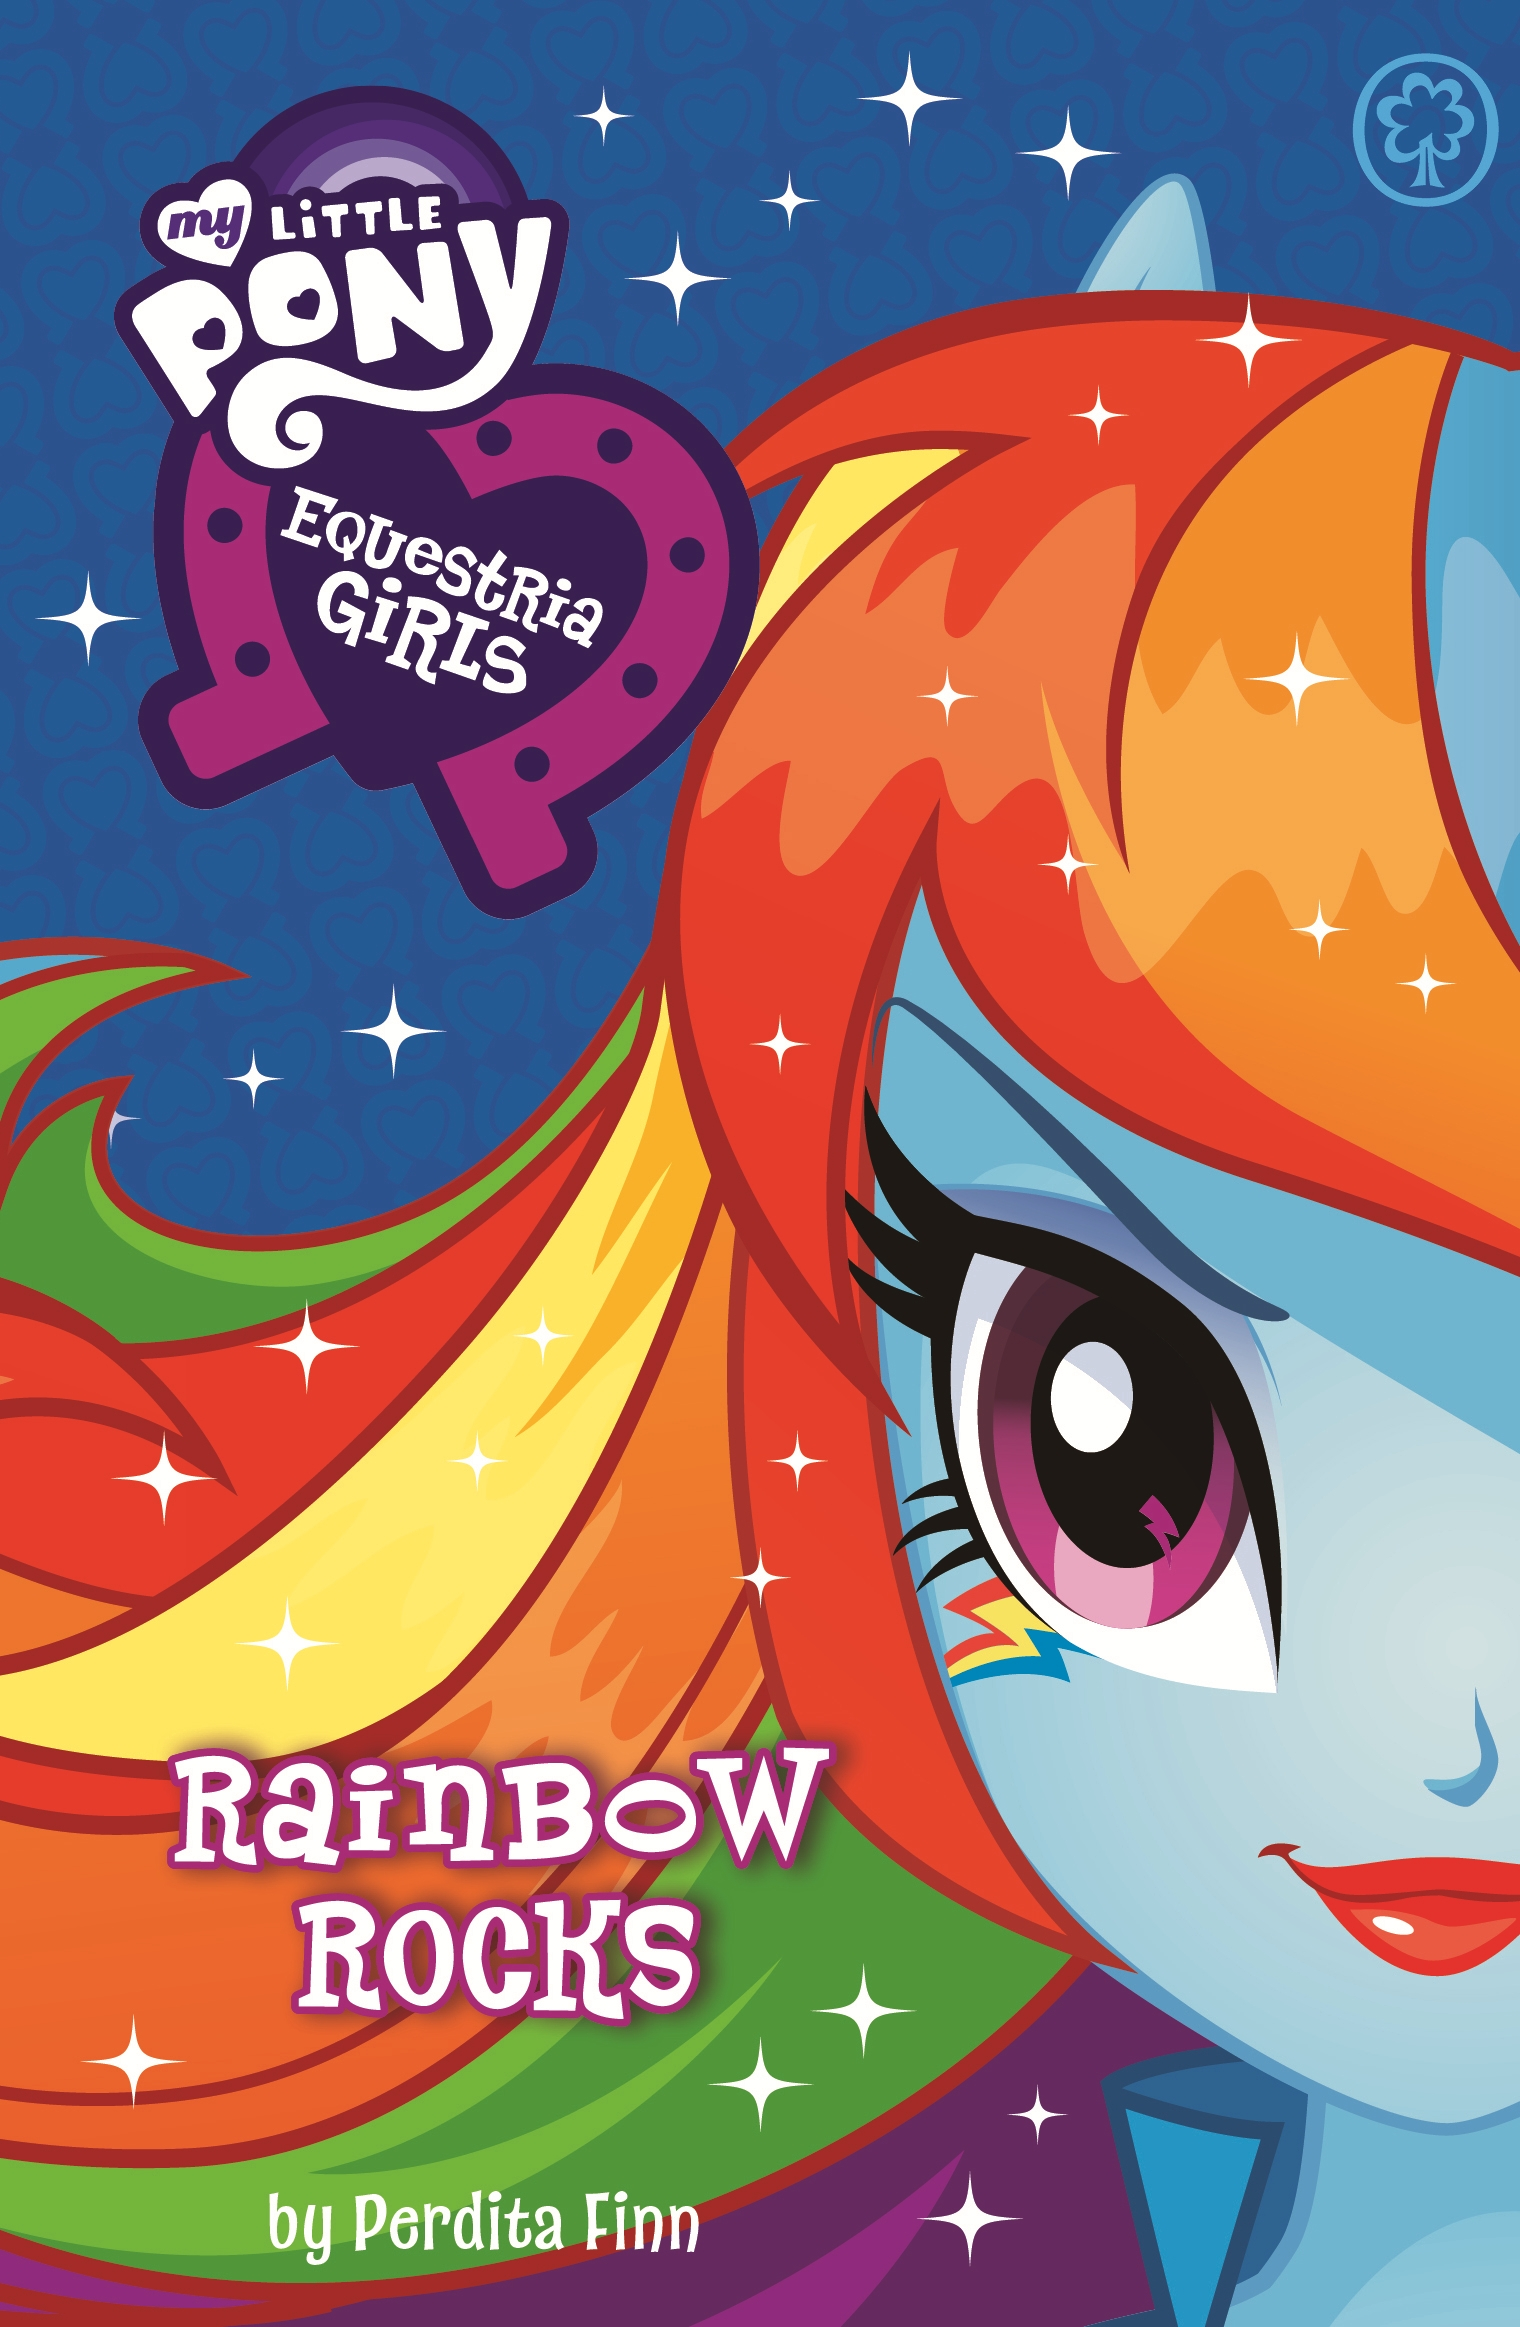 My Little Pony Equestria Girls Rainbow Rocks By Perdita Finn Hachette Childrens Uk